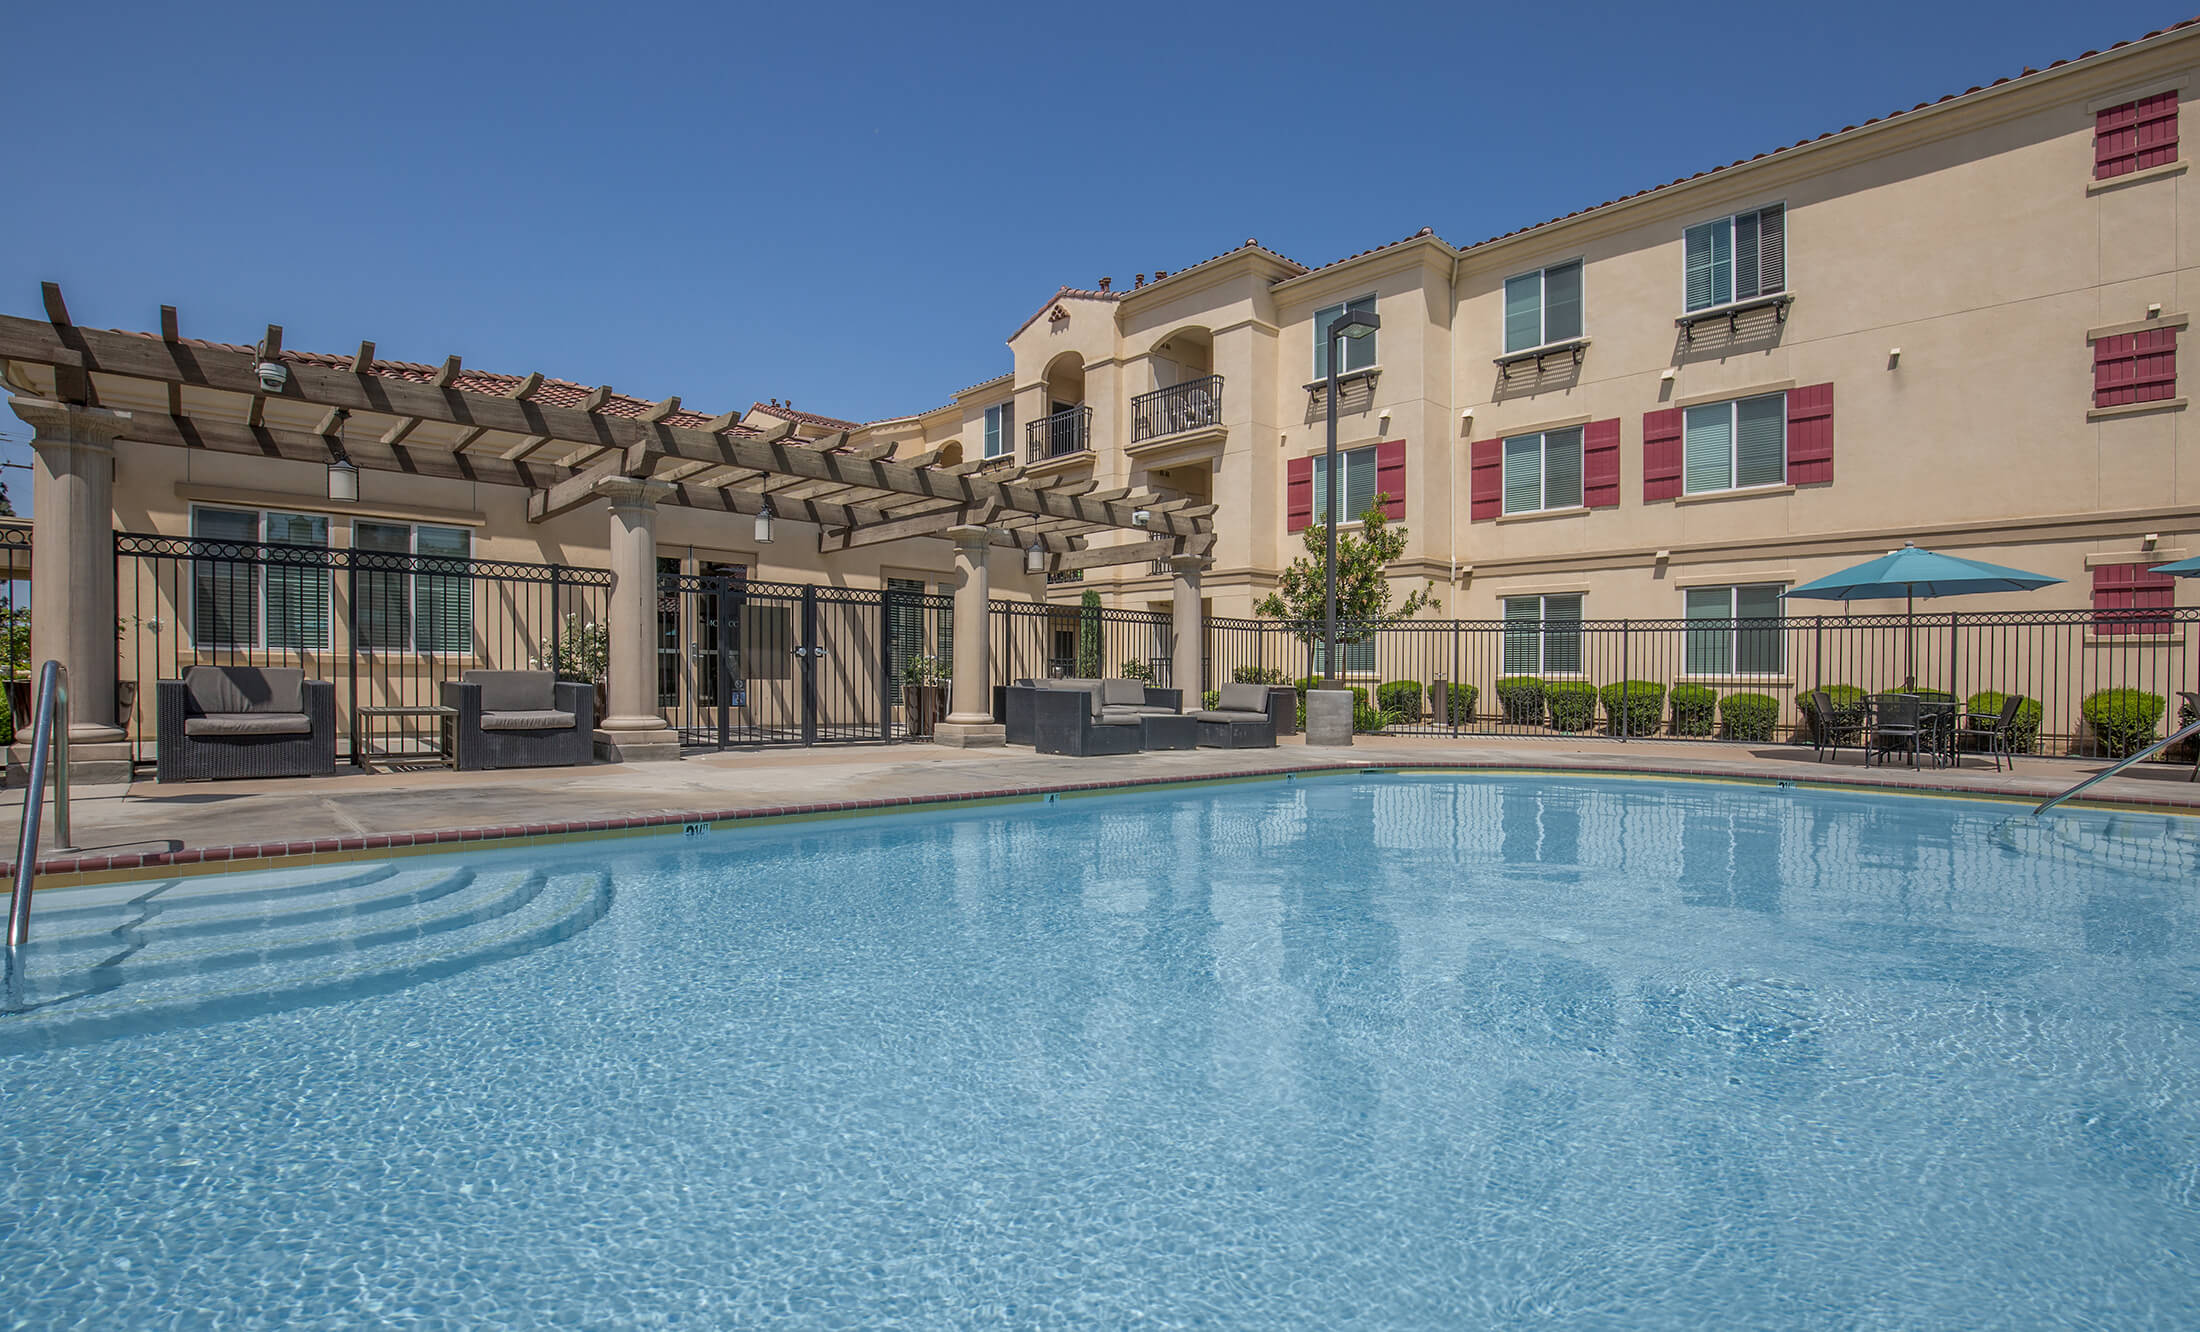 Chino apartments for seniors